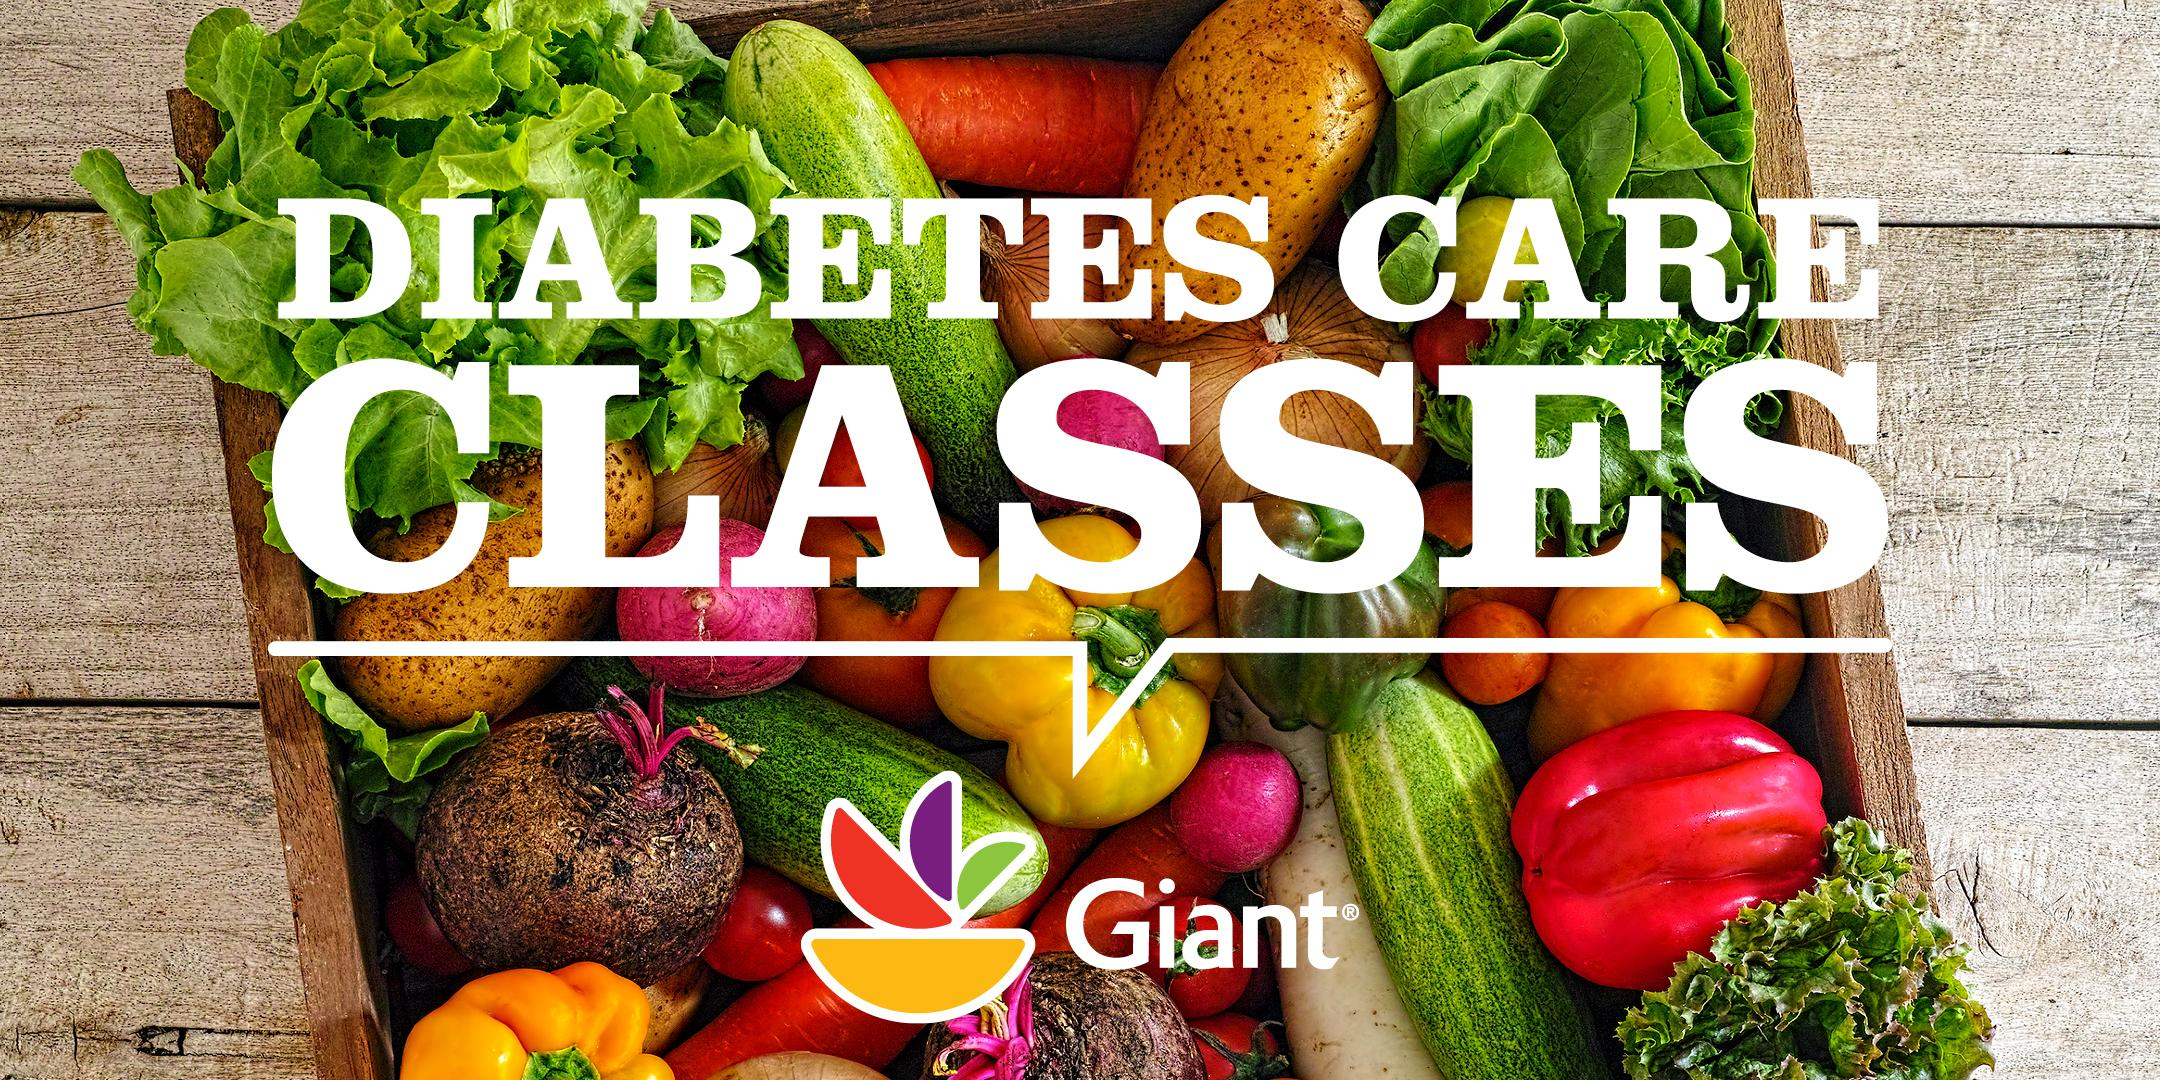 FREE DIABETES CARE CLASS with Natalie Kannan, RD photo